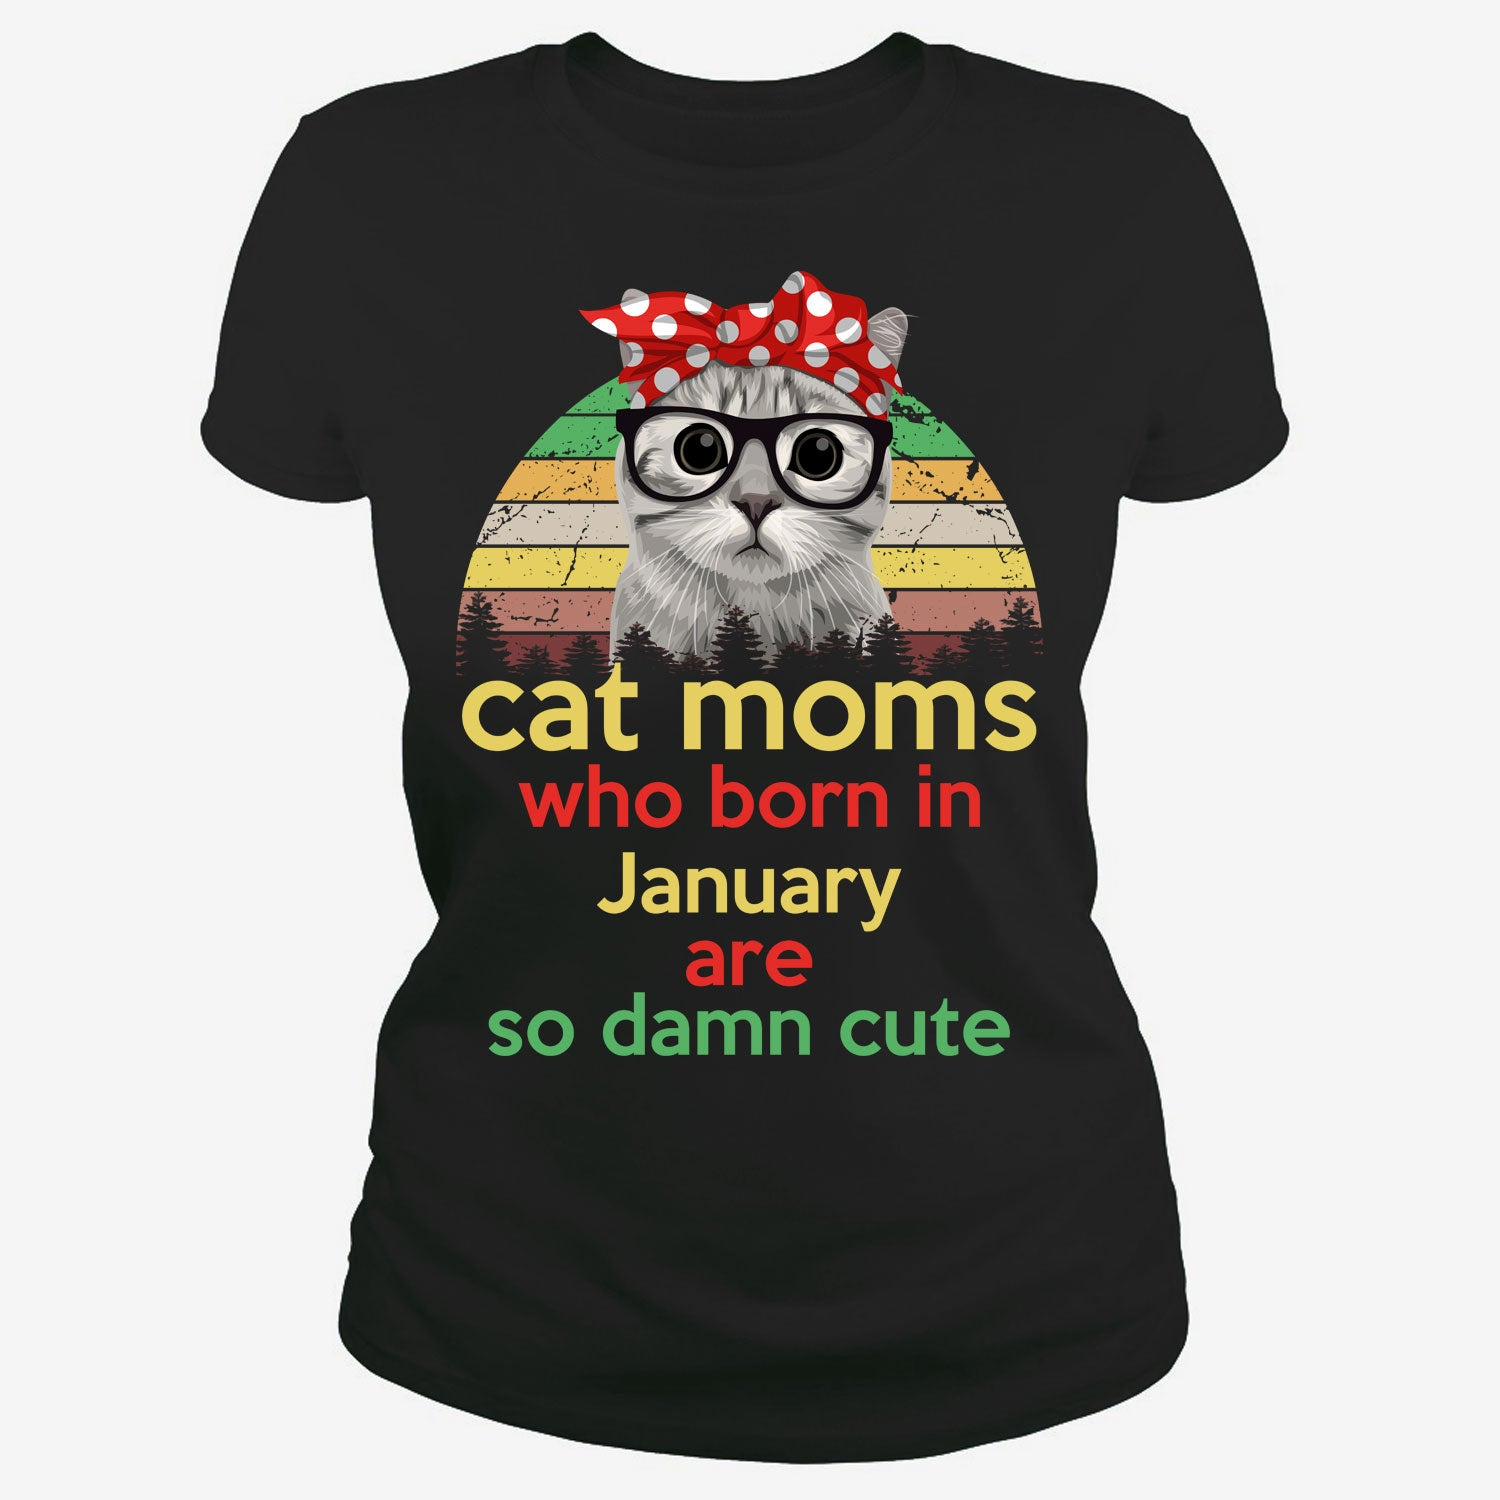 Cat moms who born in January